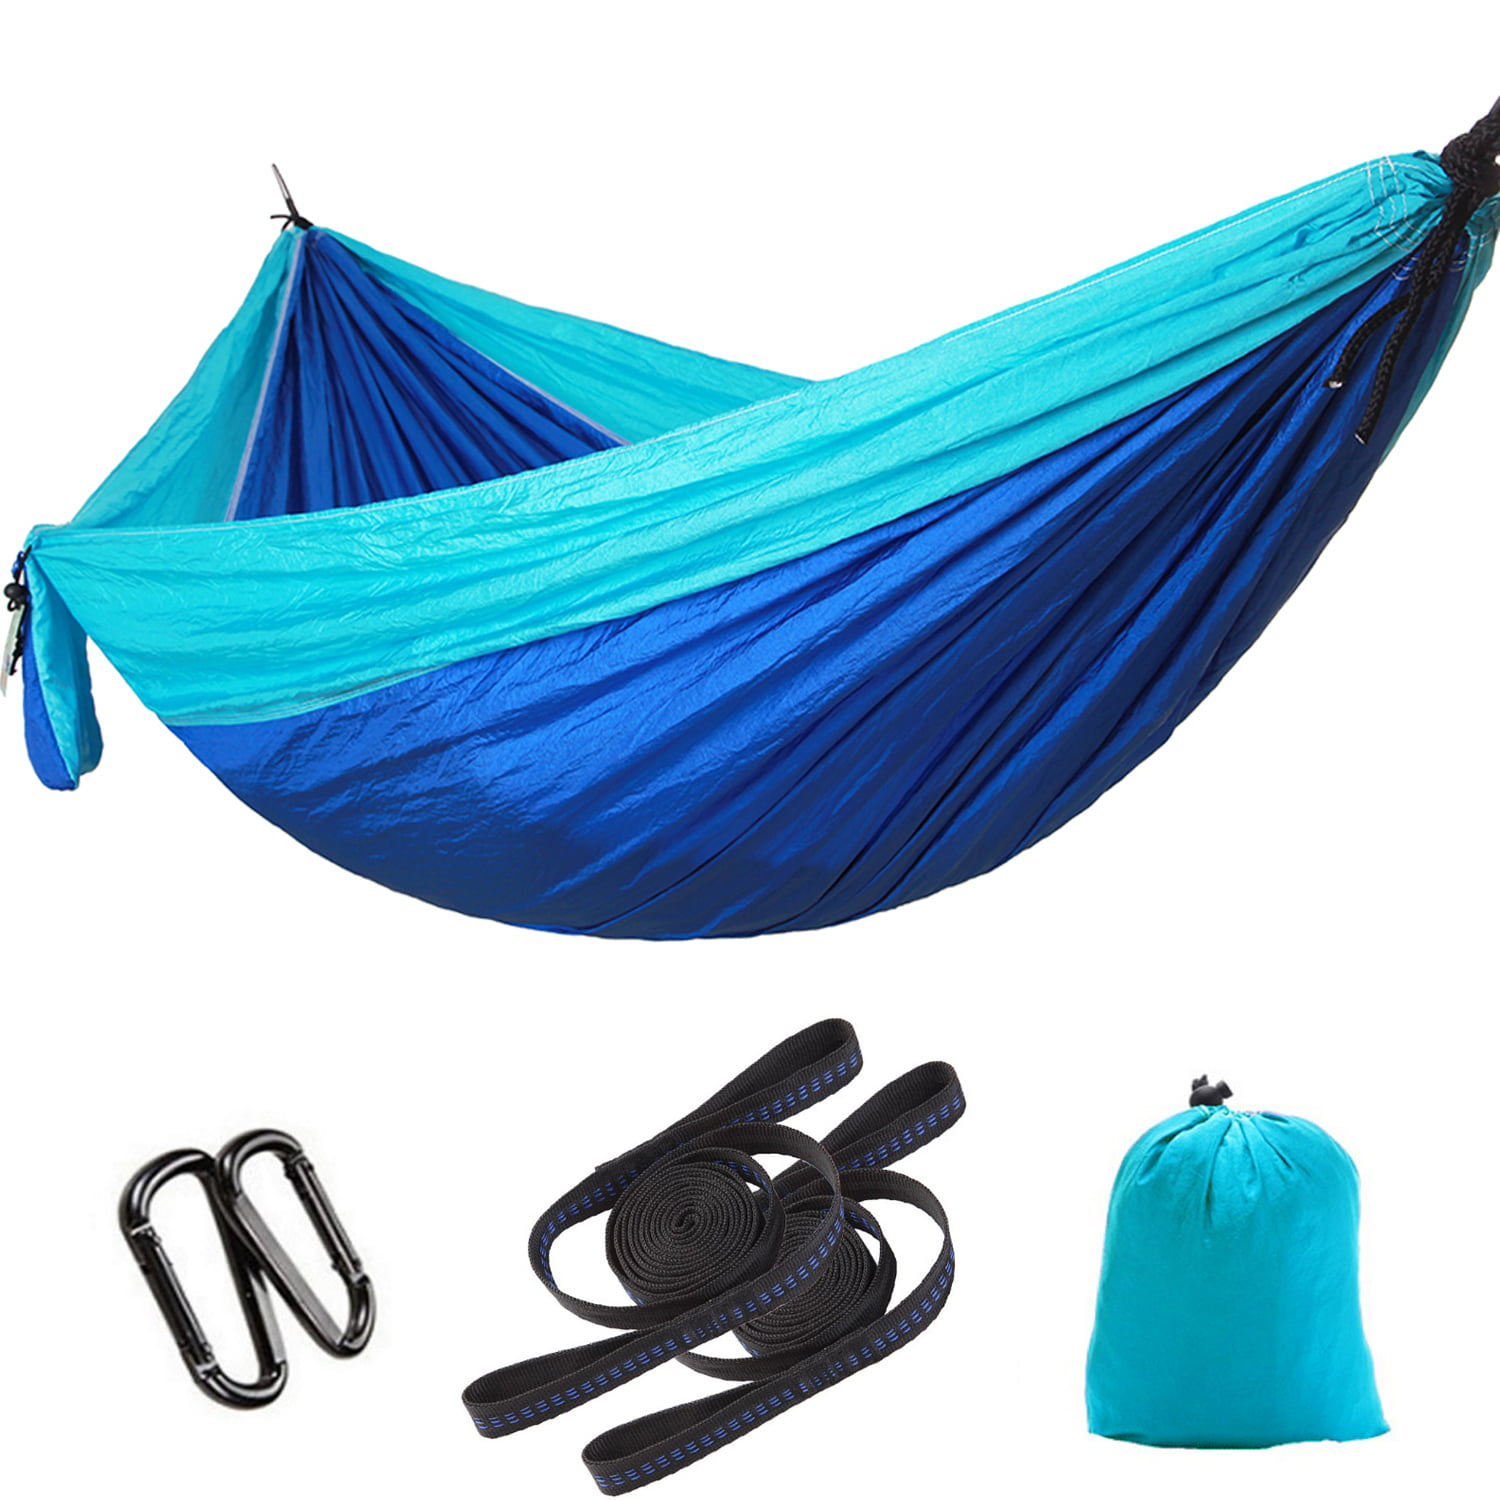 Lightahead Double Parachute Portable Camping Hammock Including 2 Straps with Loops & Carabiners� Best Heavy Duty... by Lightahead®